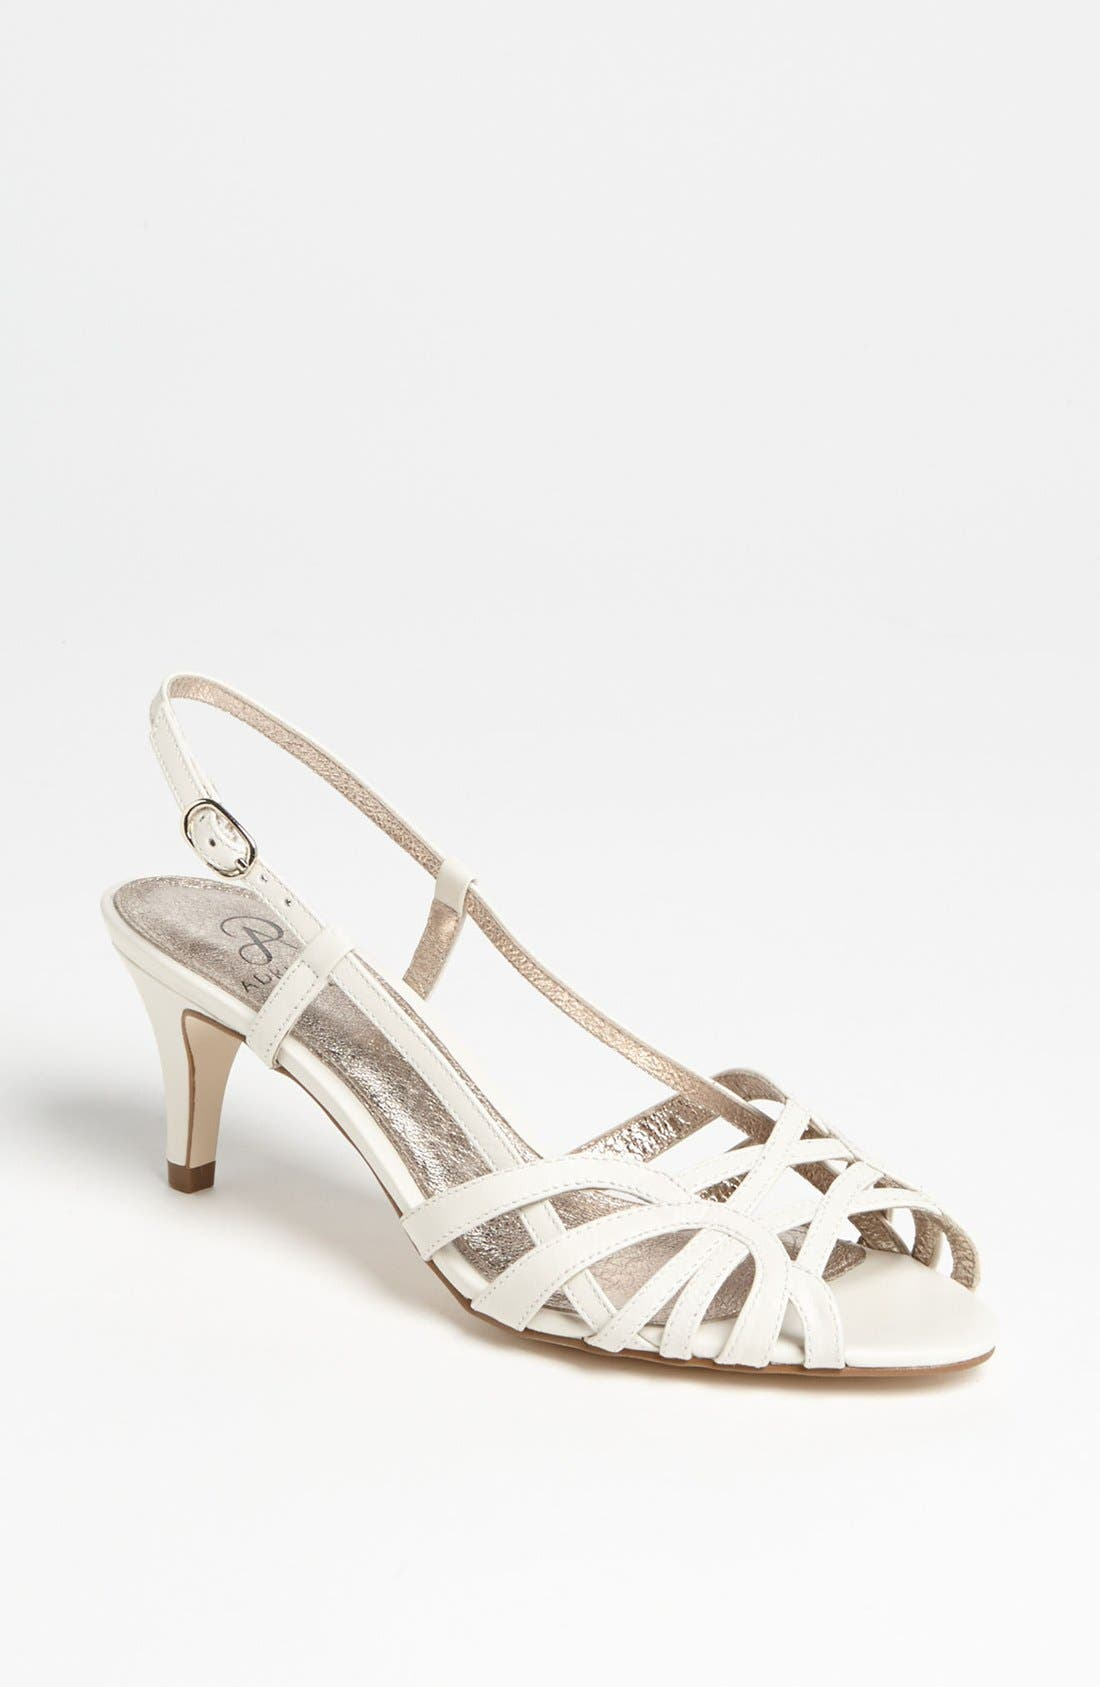 Main Image - Adrianna Papell 'Janey' Sandal